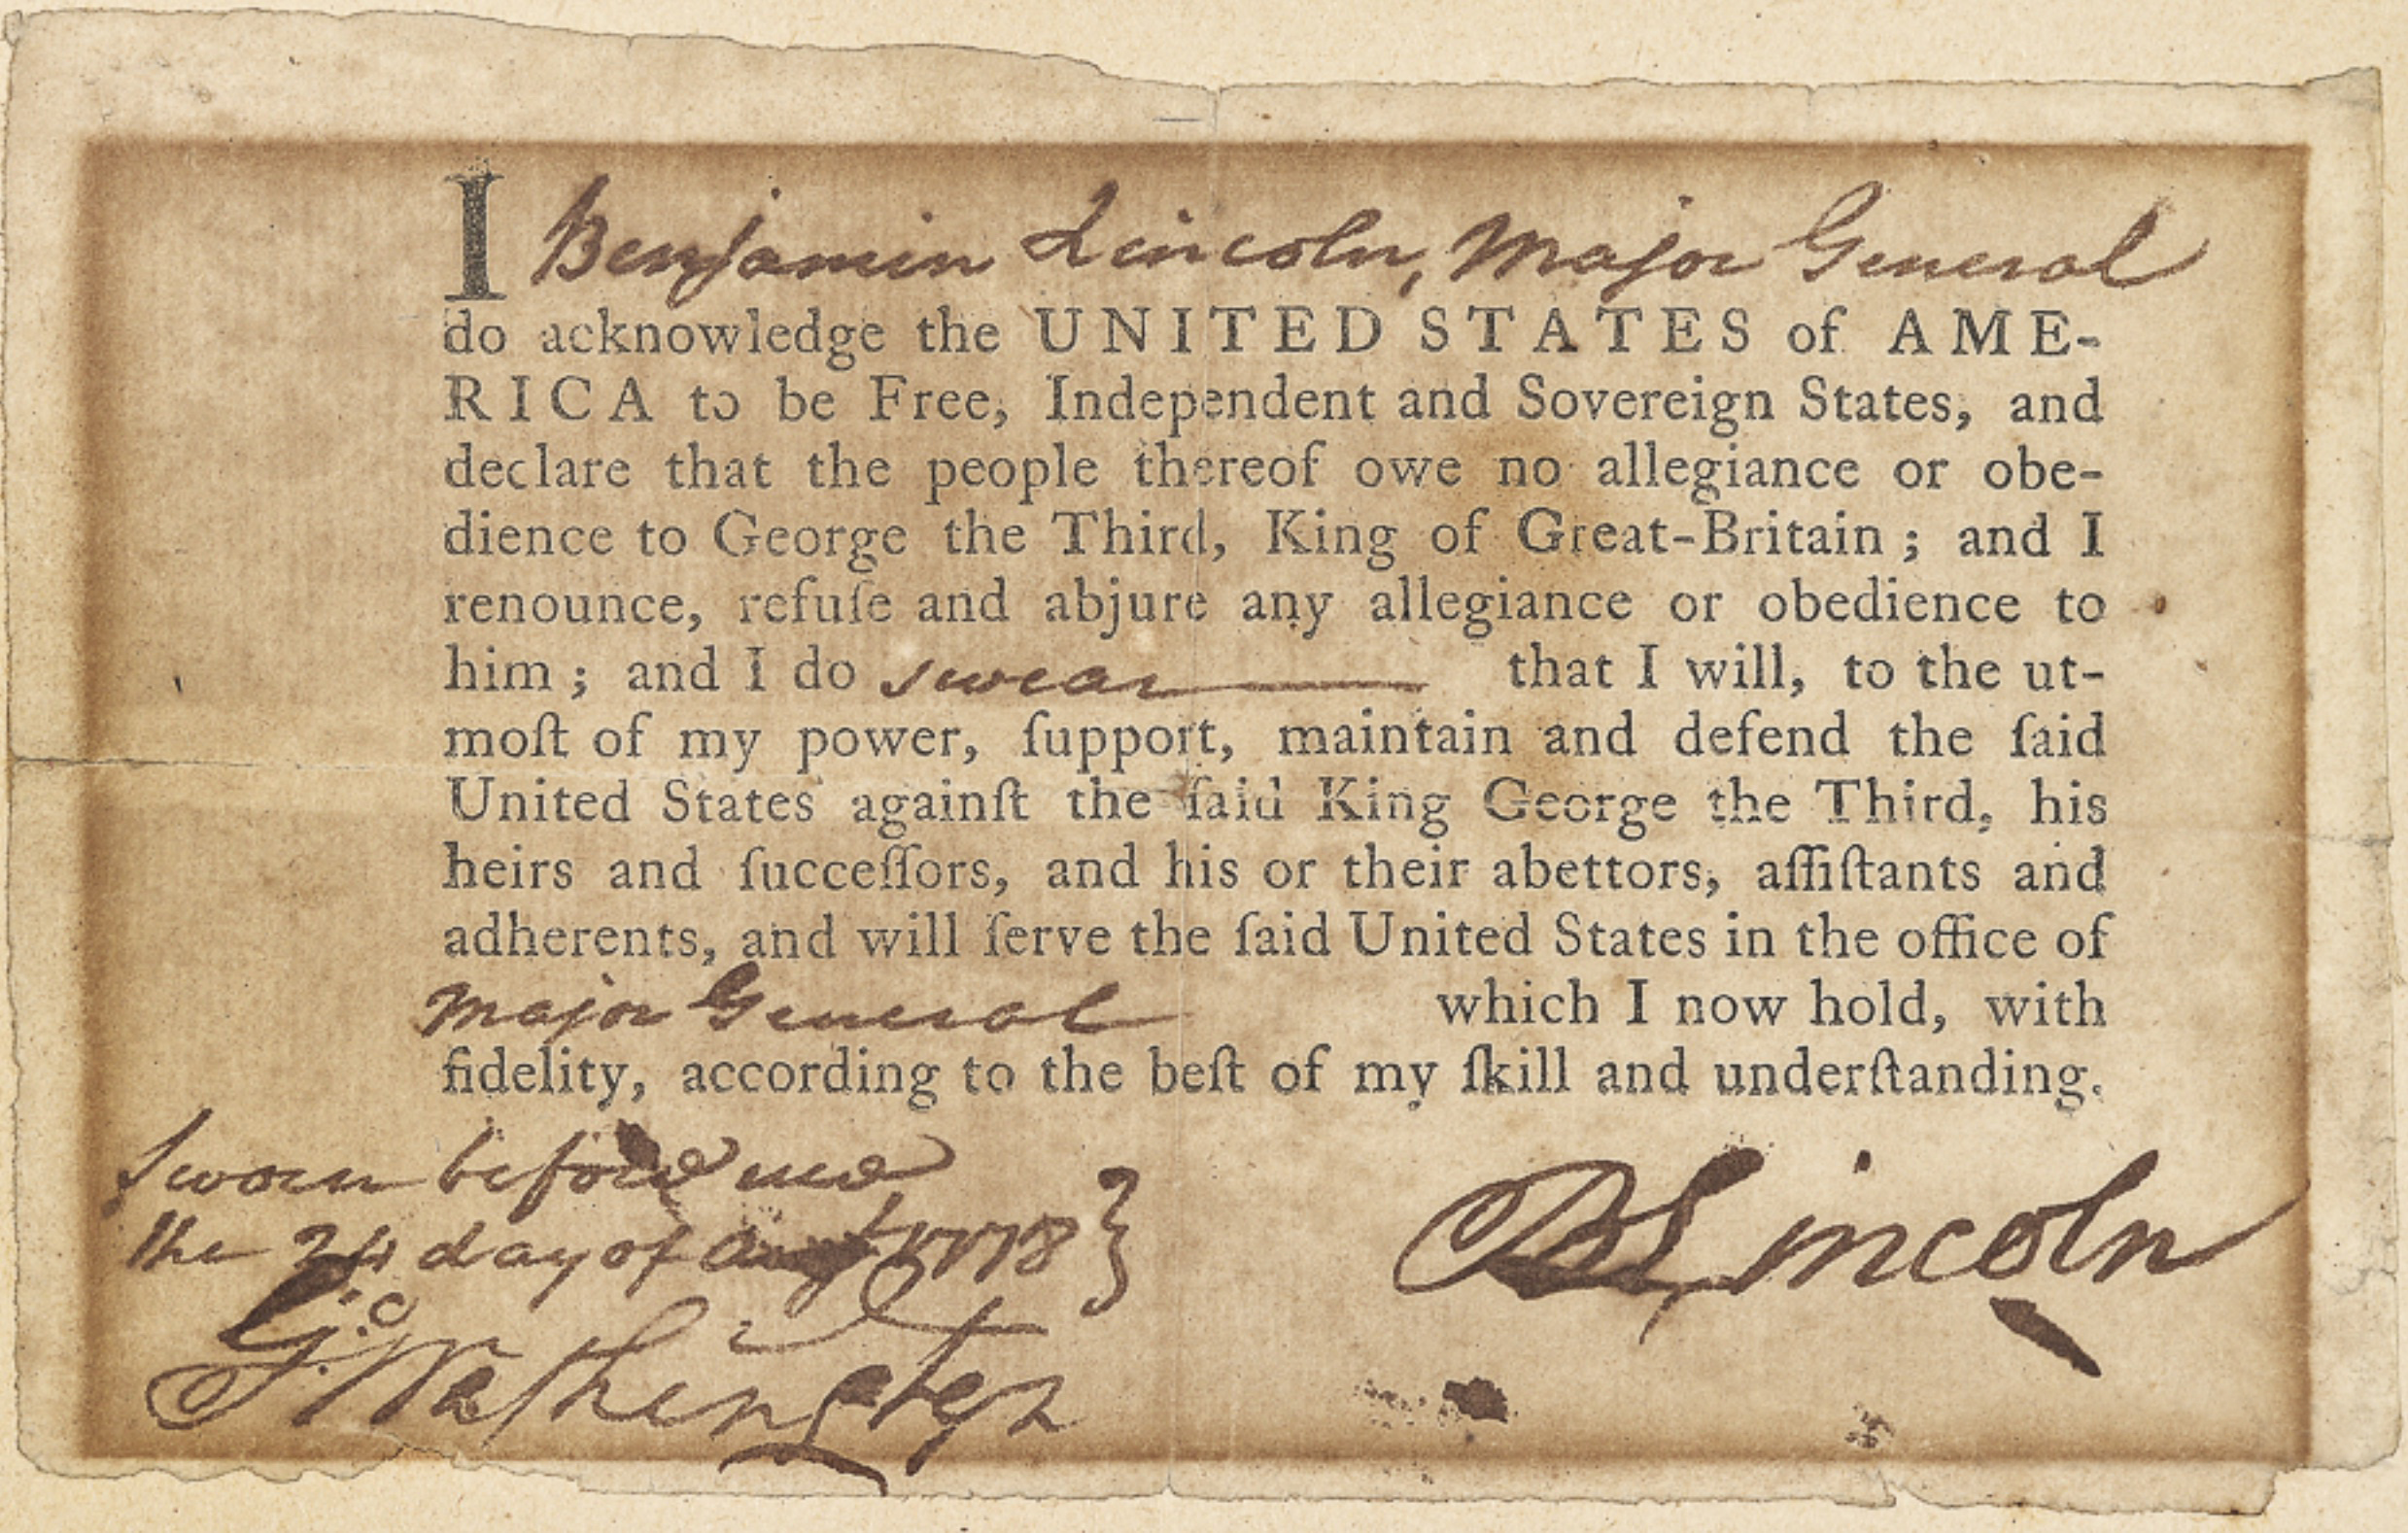 Benjamin Lincoln's Oath of Allegiance testified to his loyalty to the American cause.